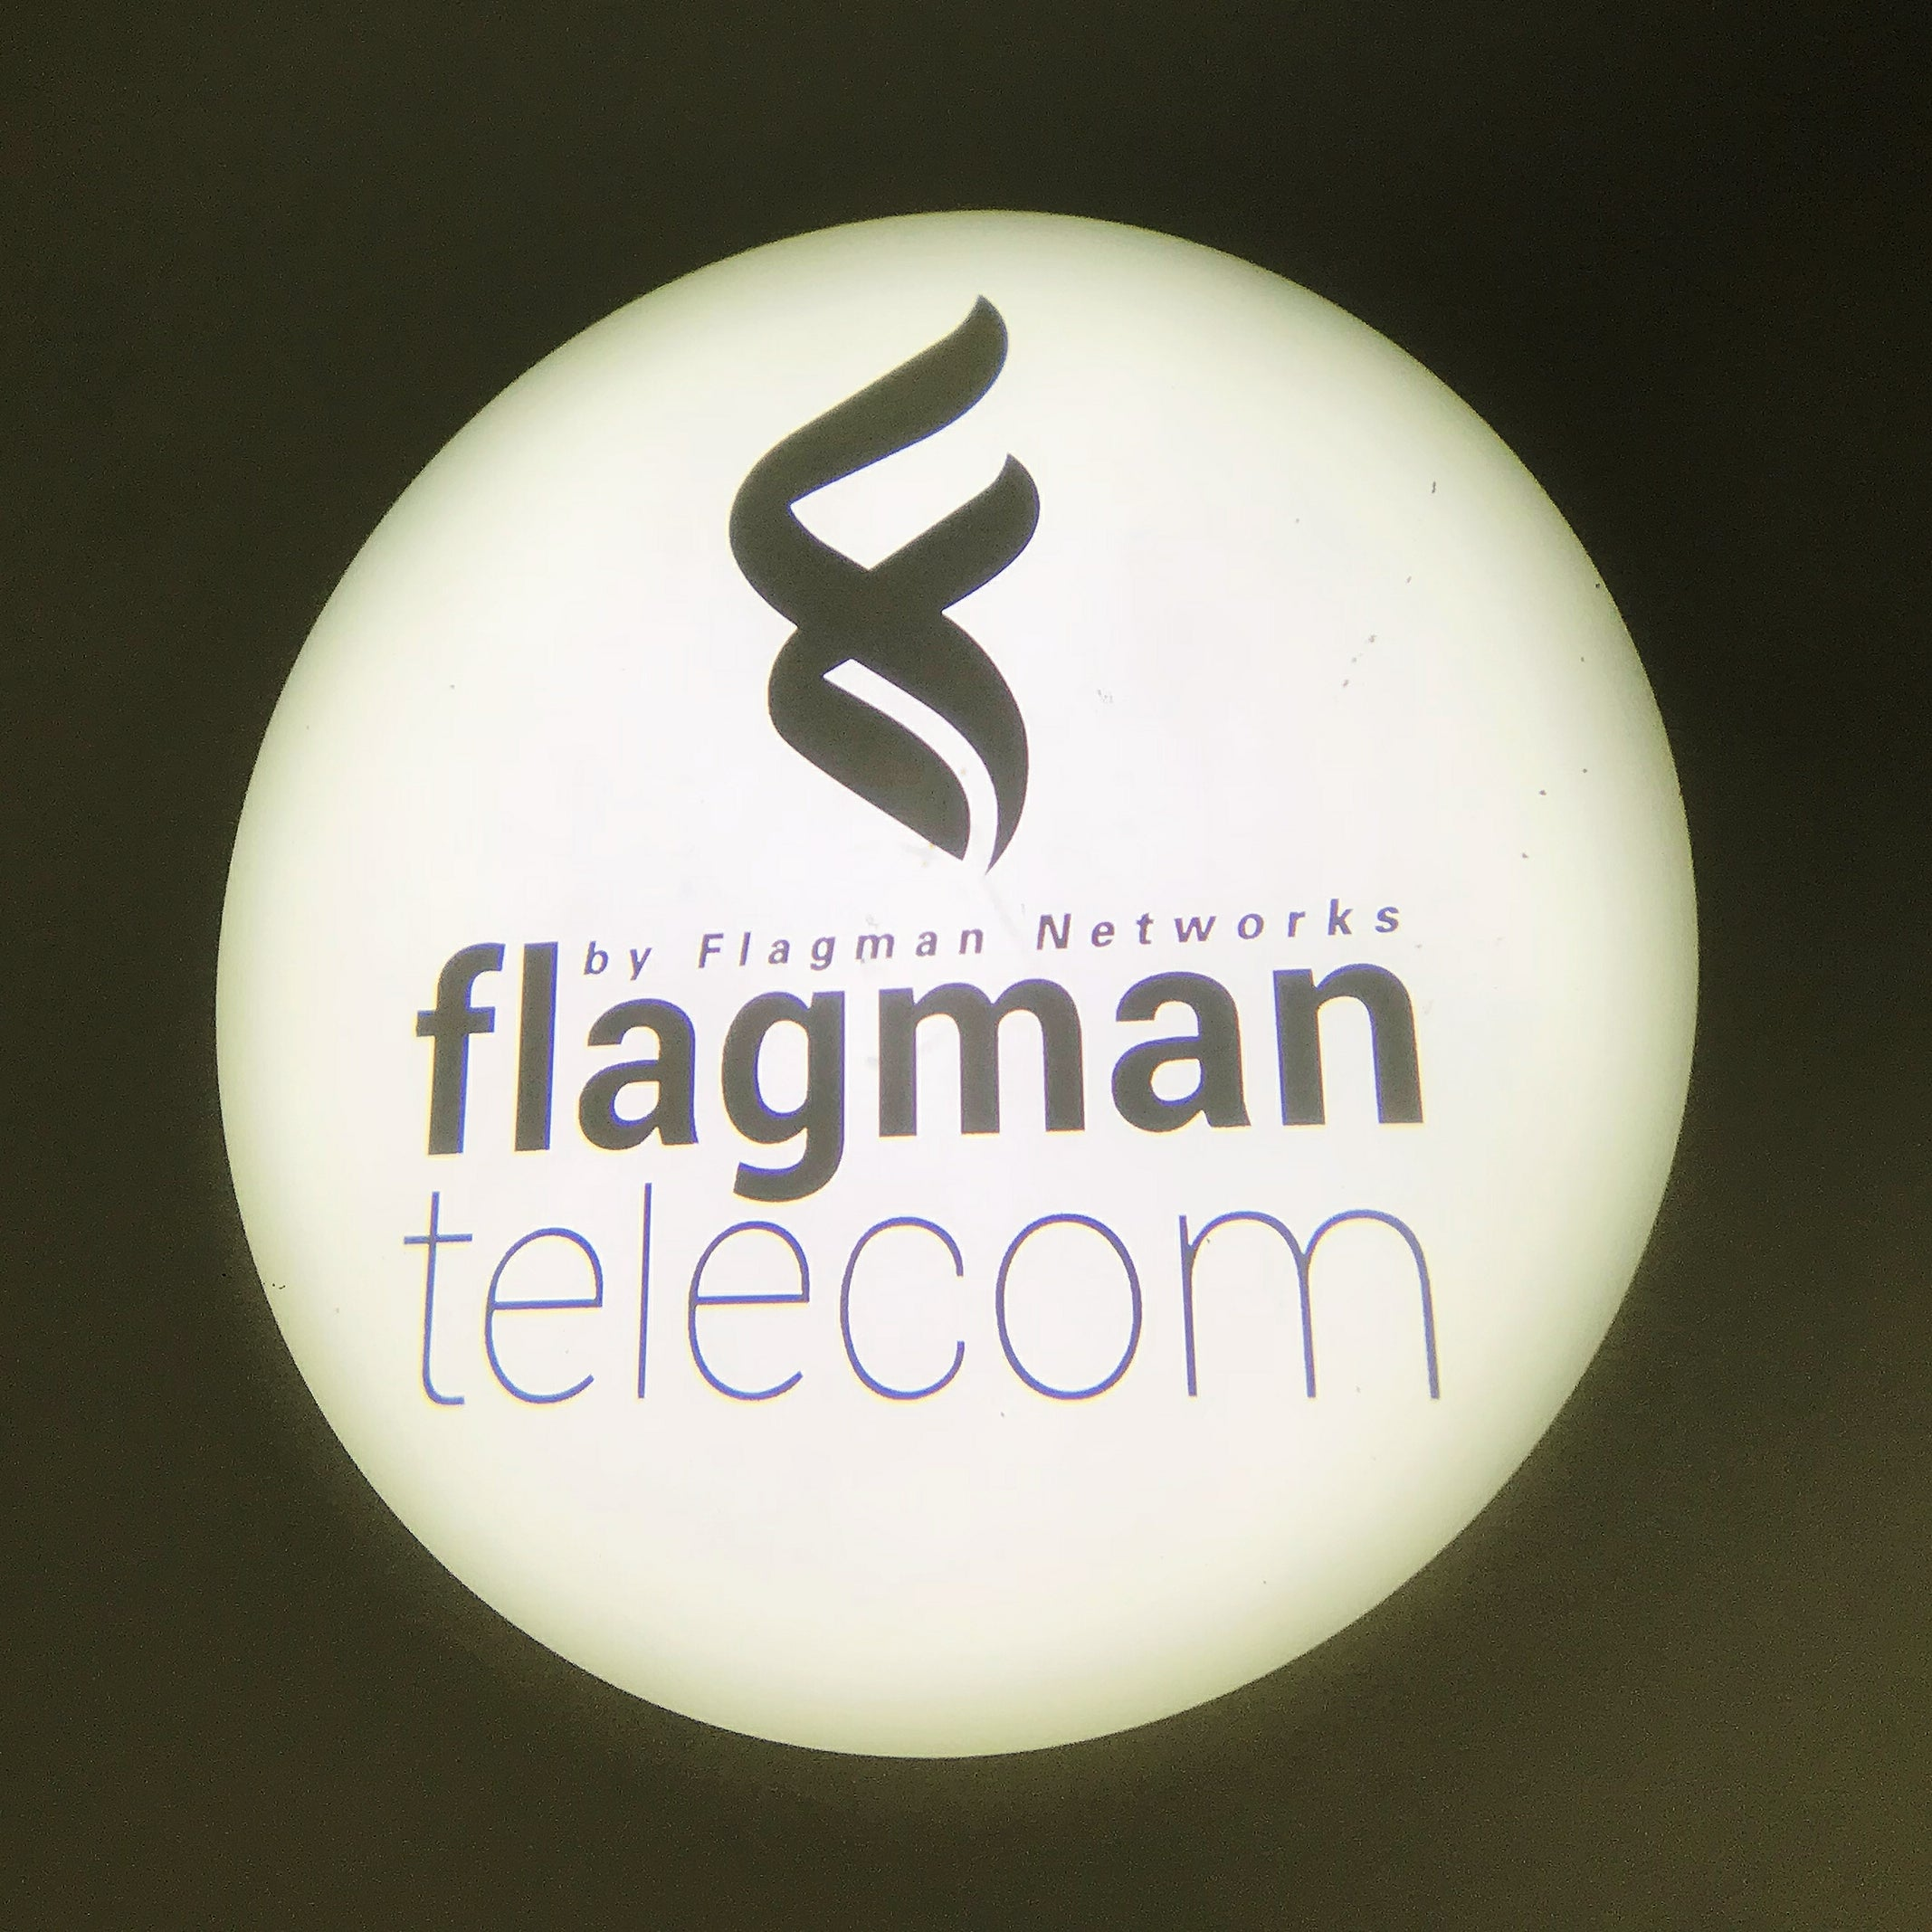 8th April 2018—Flagman telecom